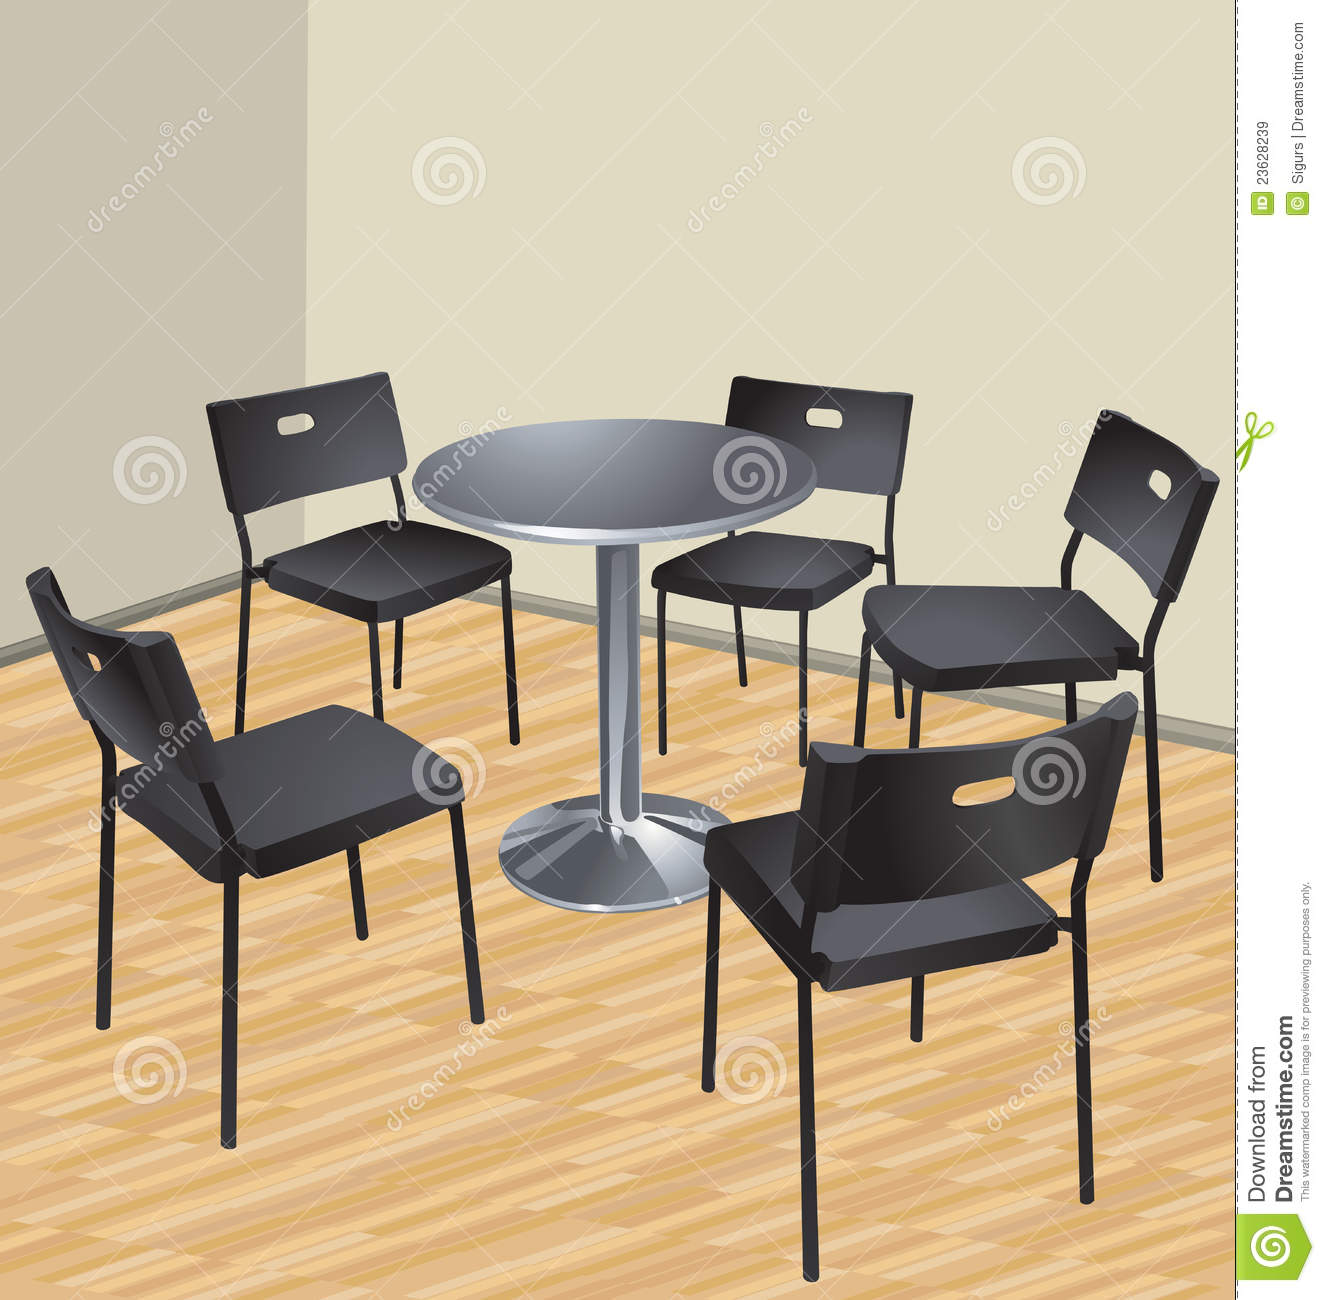 Five Chairs Five Chairs And Table Royalty Free Stock Images Image